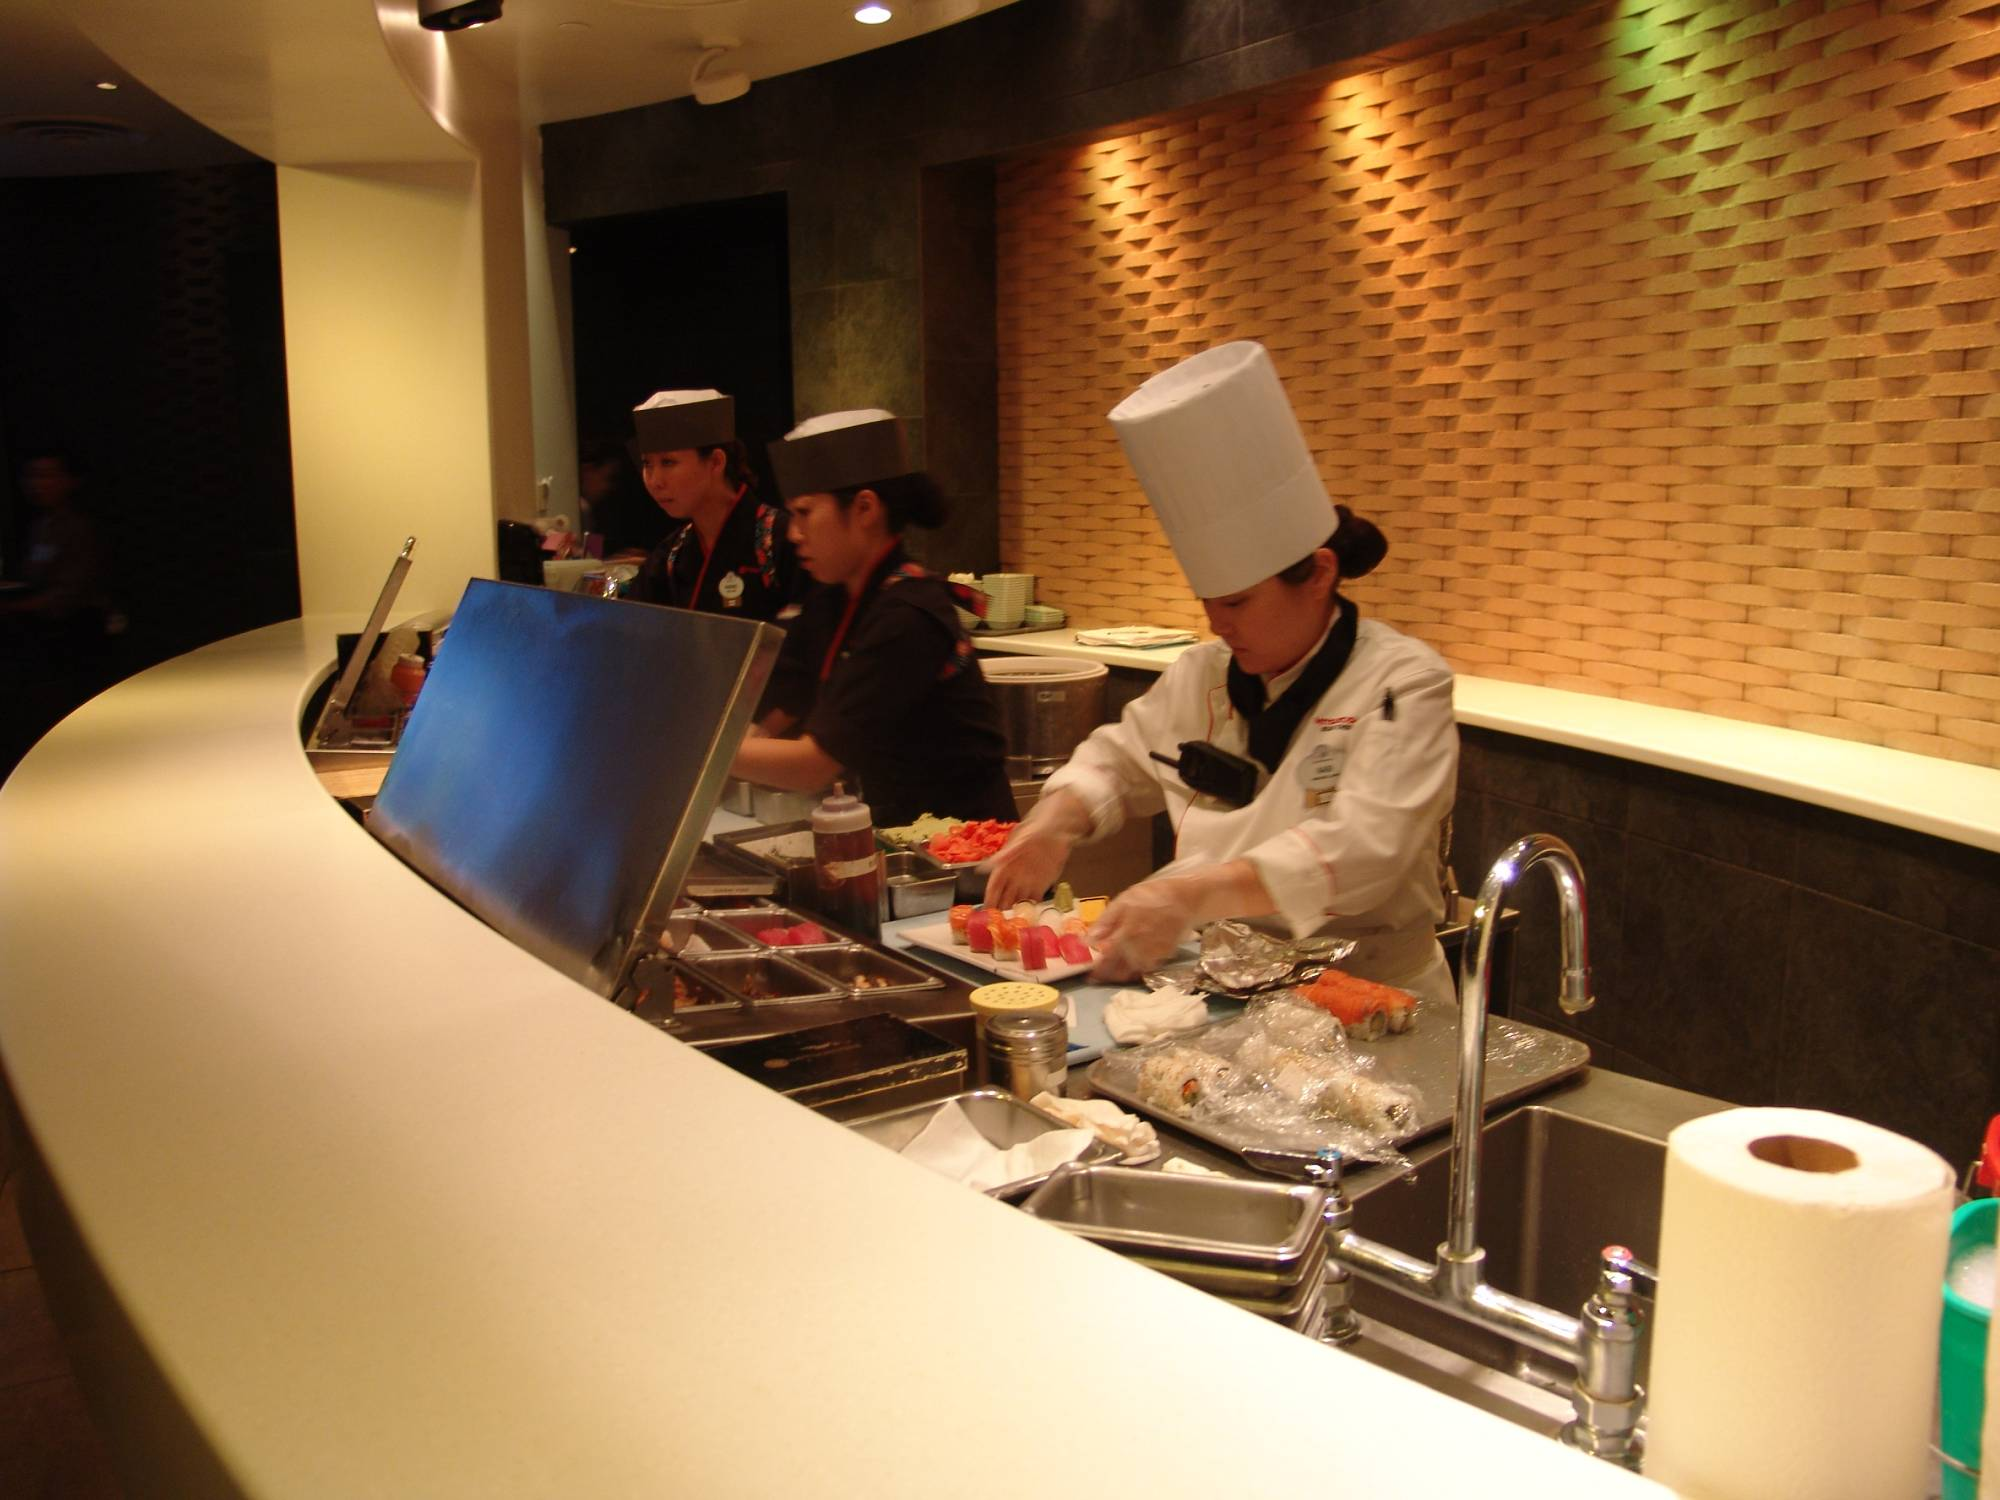 Discover one of Epcot's best kept secrets - Tokyo Dining |PassPorter.com